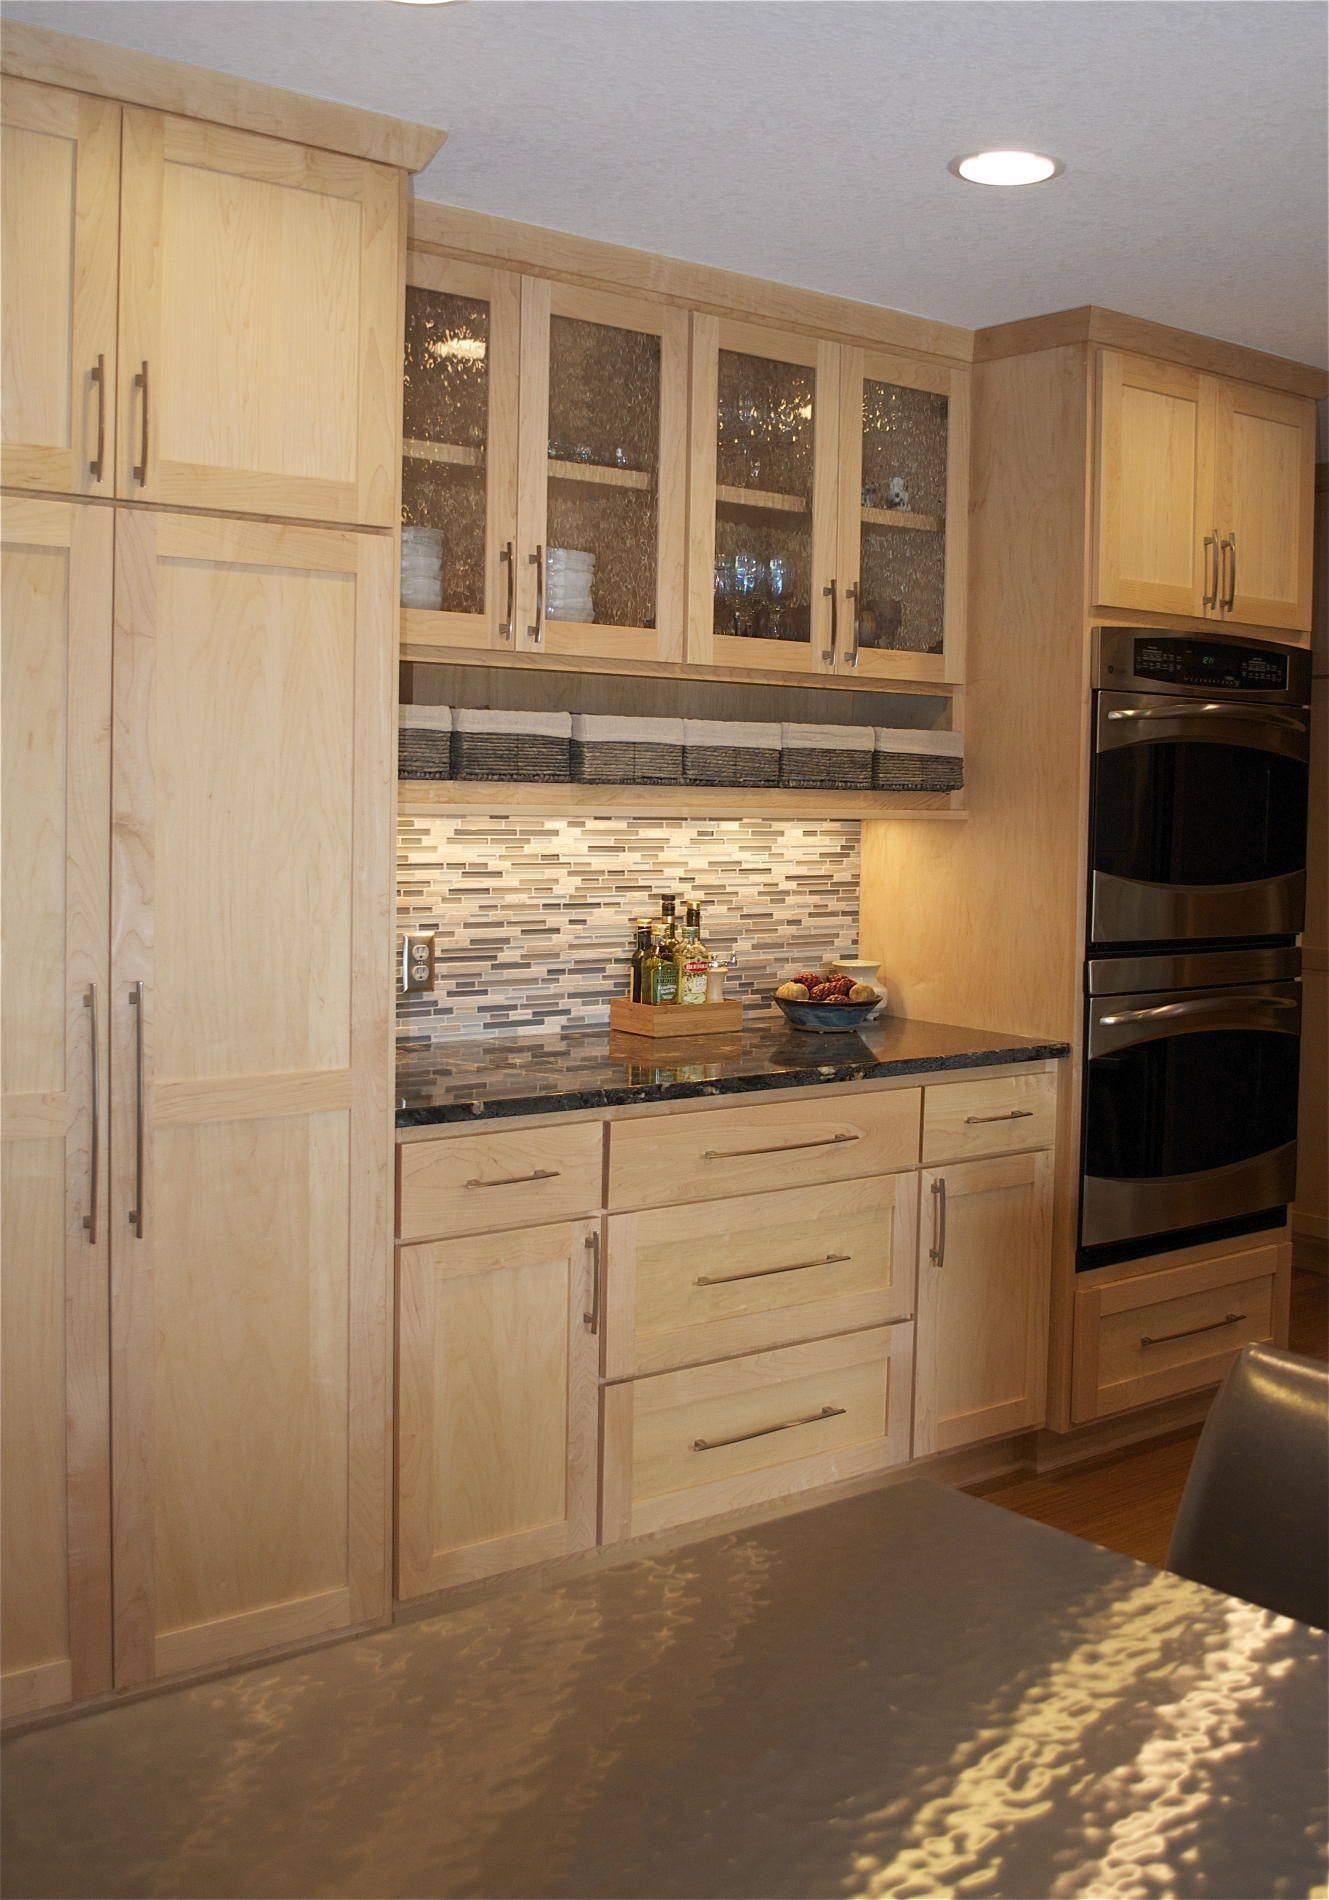 Kitchen Cabinets Light Wood Cabinet Refacing Ideas Colors With Then Dining Table